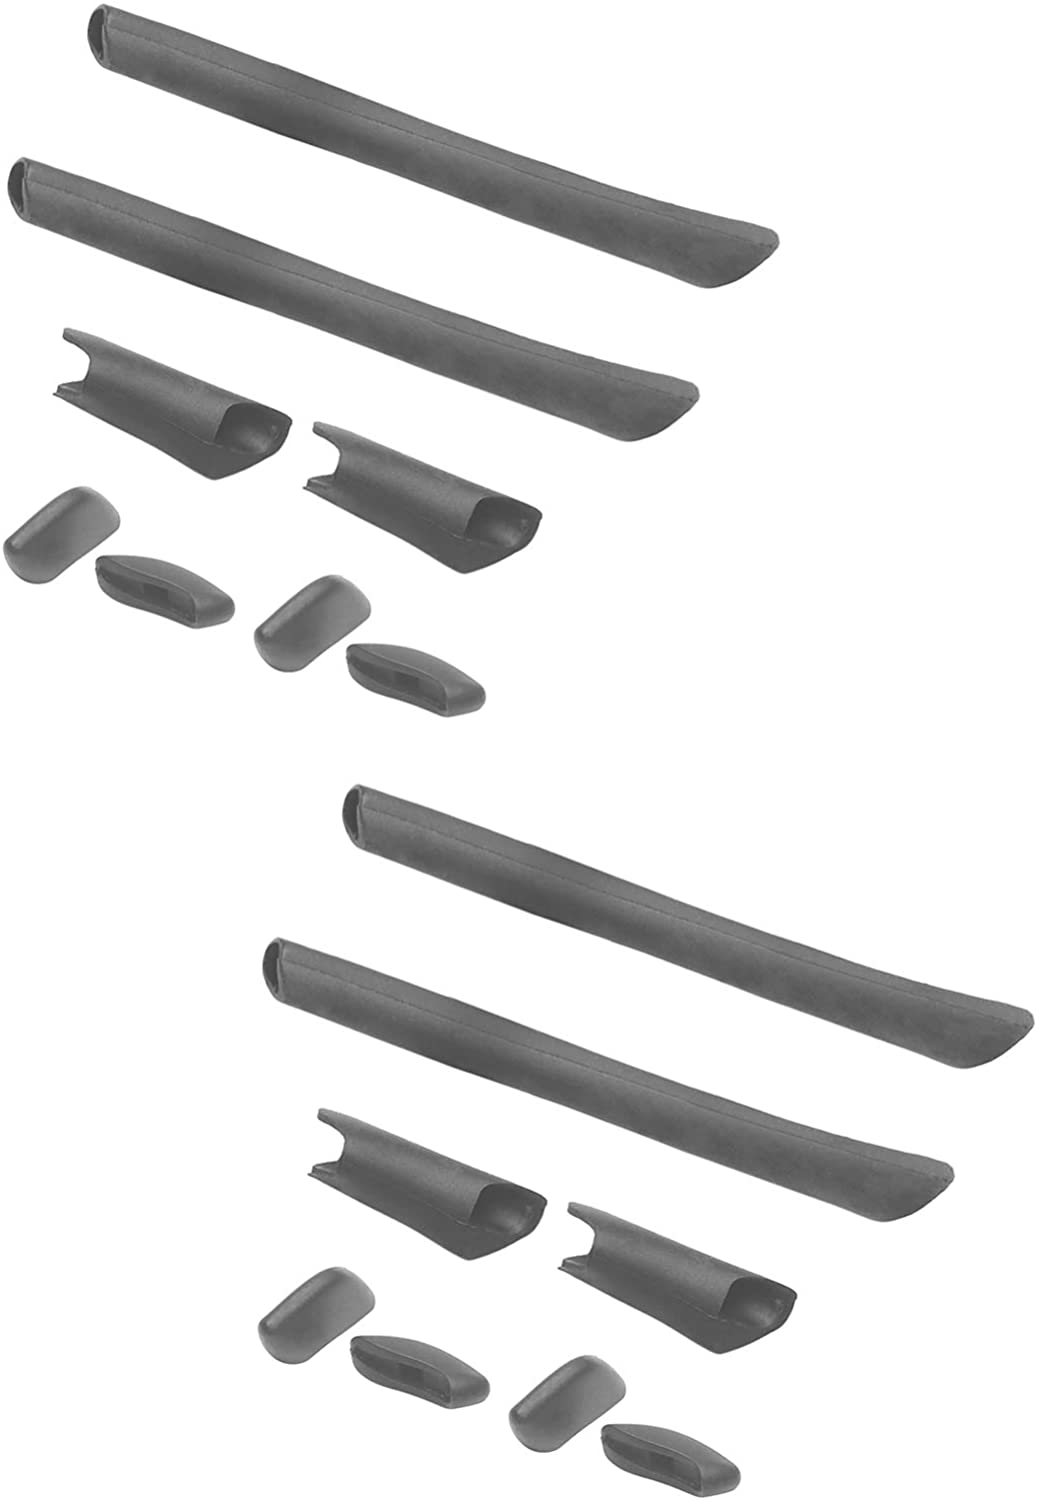 Replacement Rubber Kits Earsocks & Nosepieces for Oakley Half Jacket XLJ Sunglass